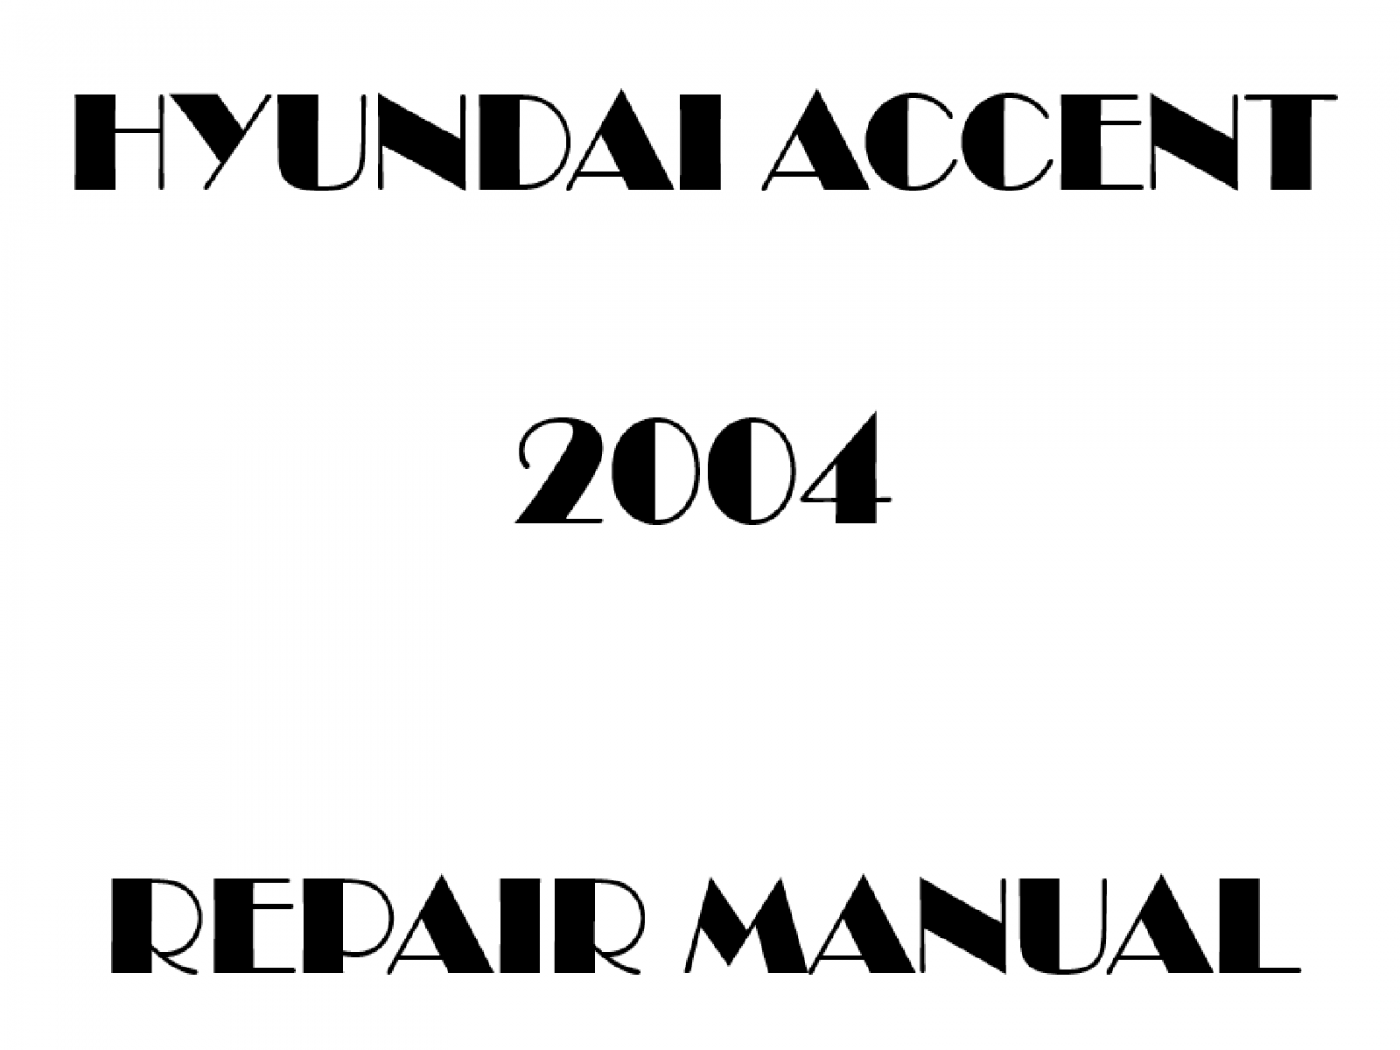 2004 Hyundai Accent repair manual